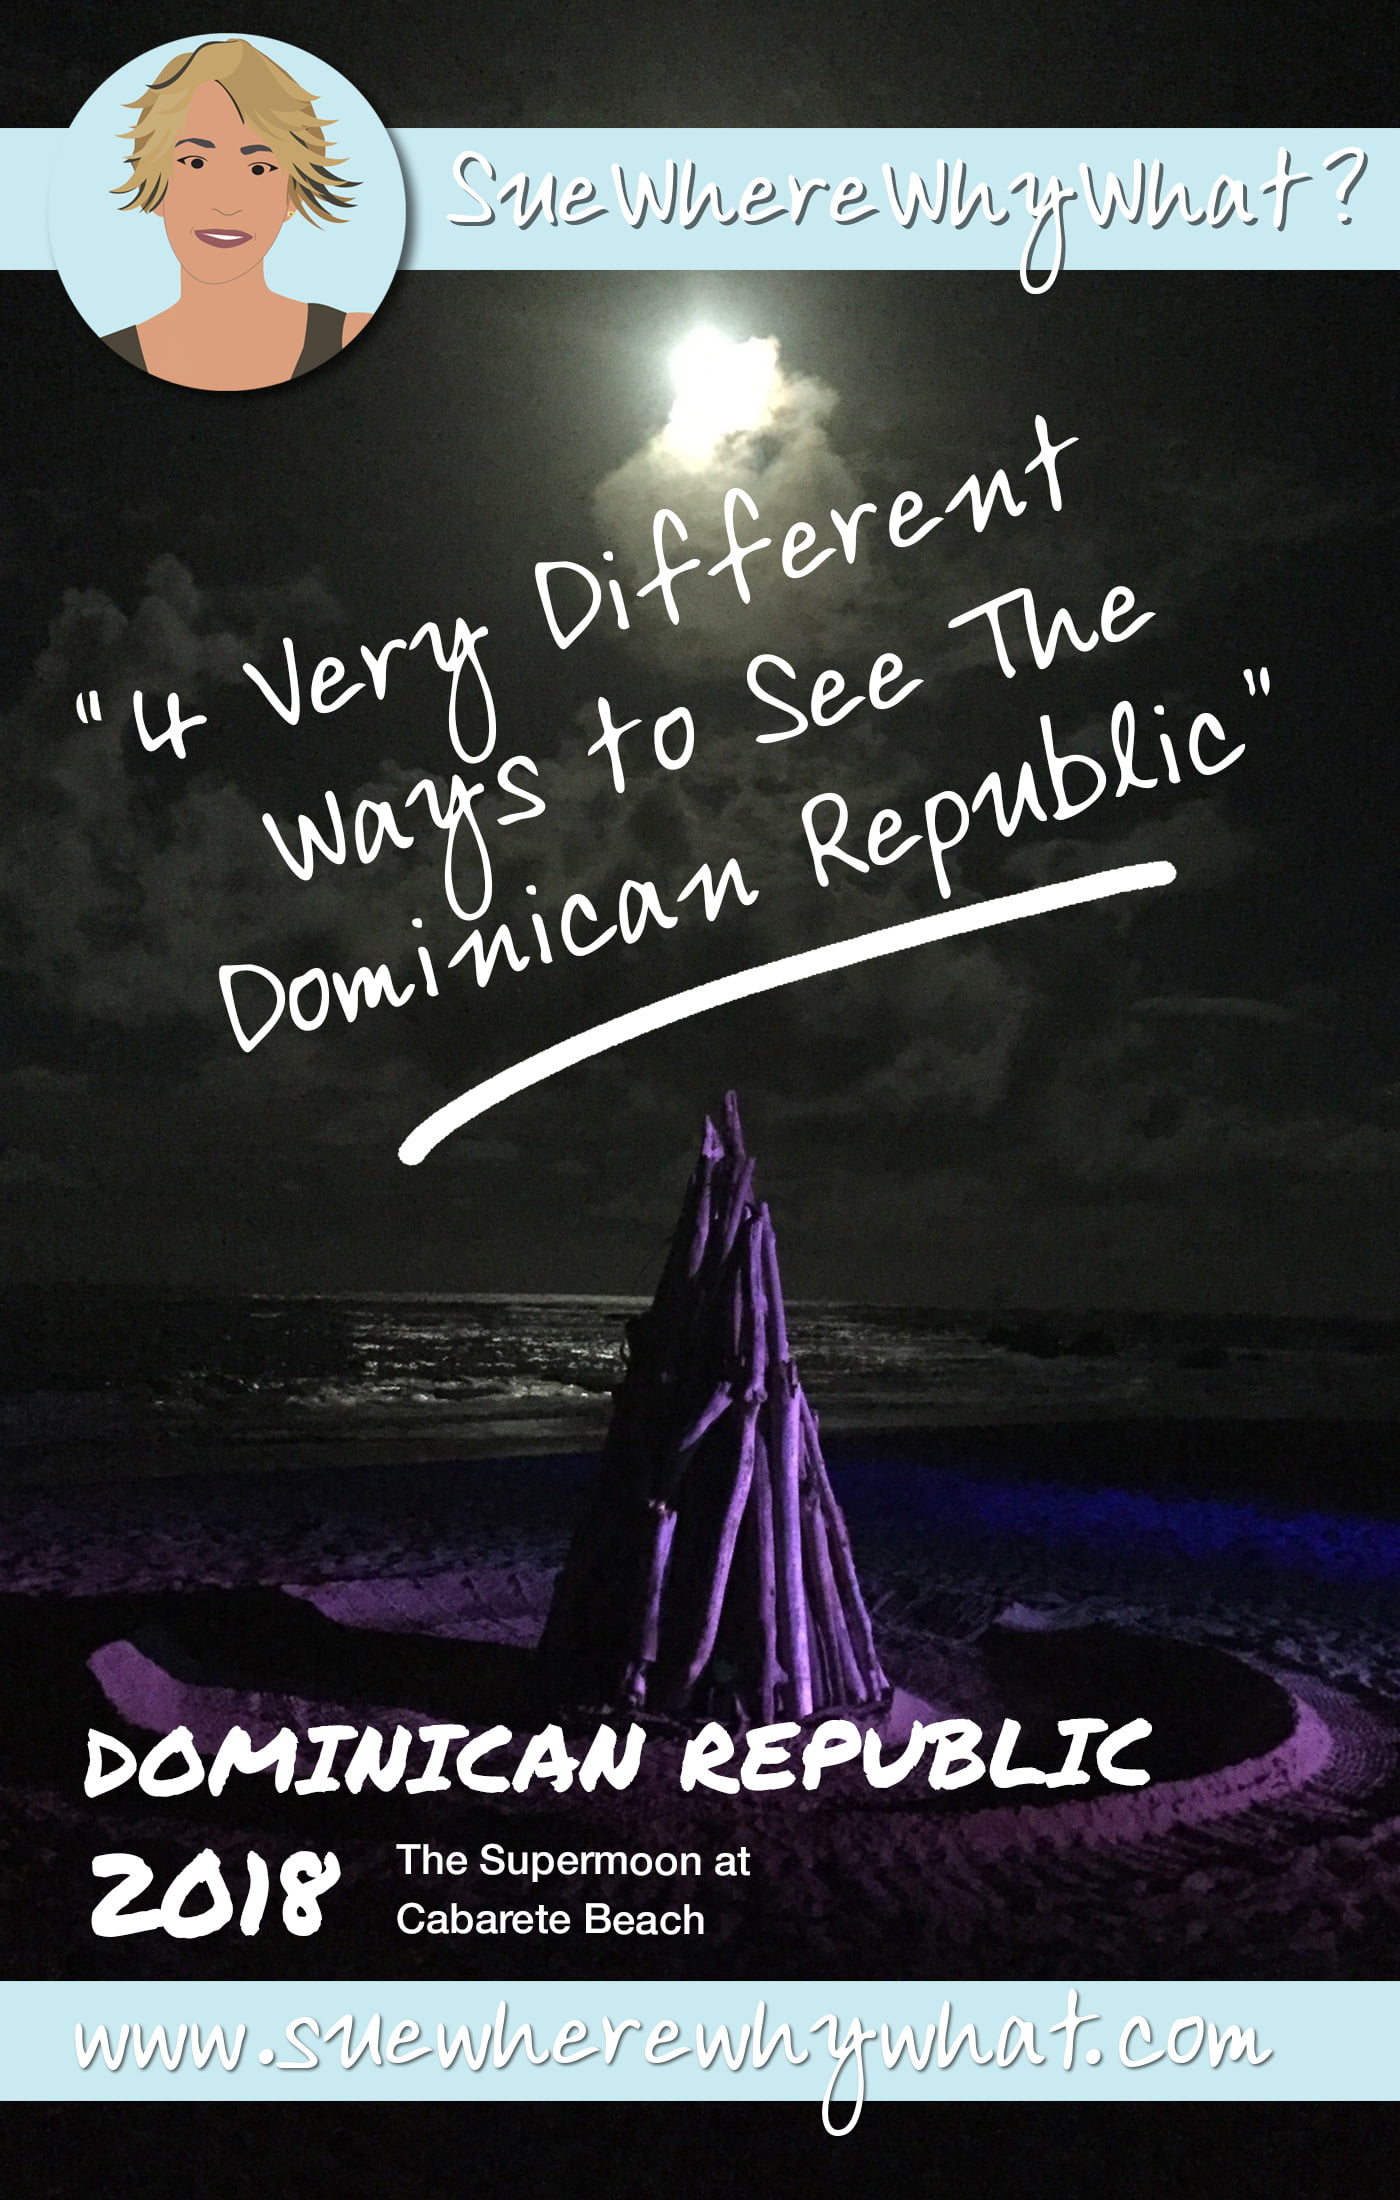 4 Very Different Ways To See The Dominican Republic